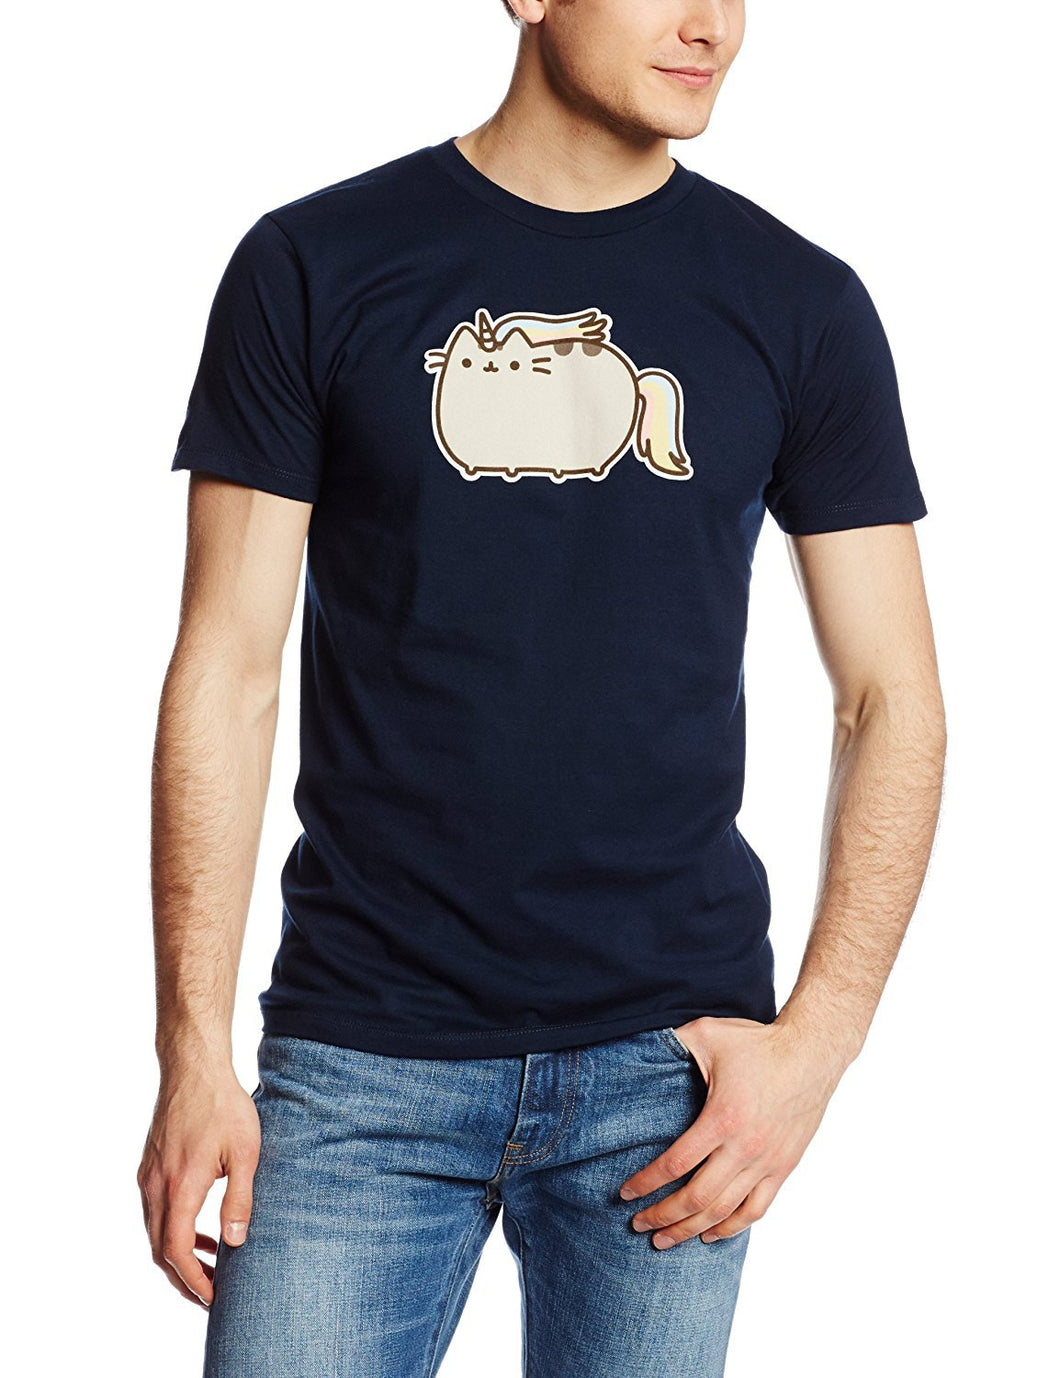 Isaac Morris Pusheen Rainbow Unicorn Cat Adult/Men's T-Shirt, Navy, Large